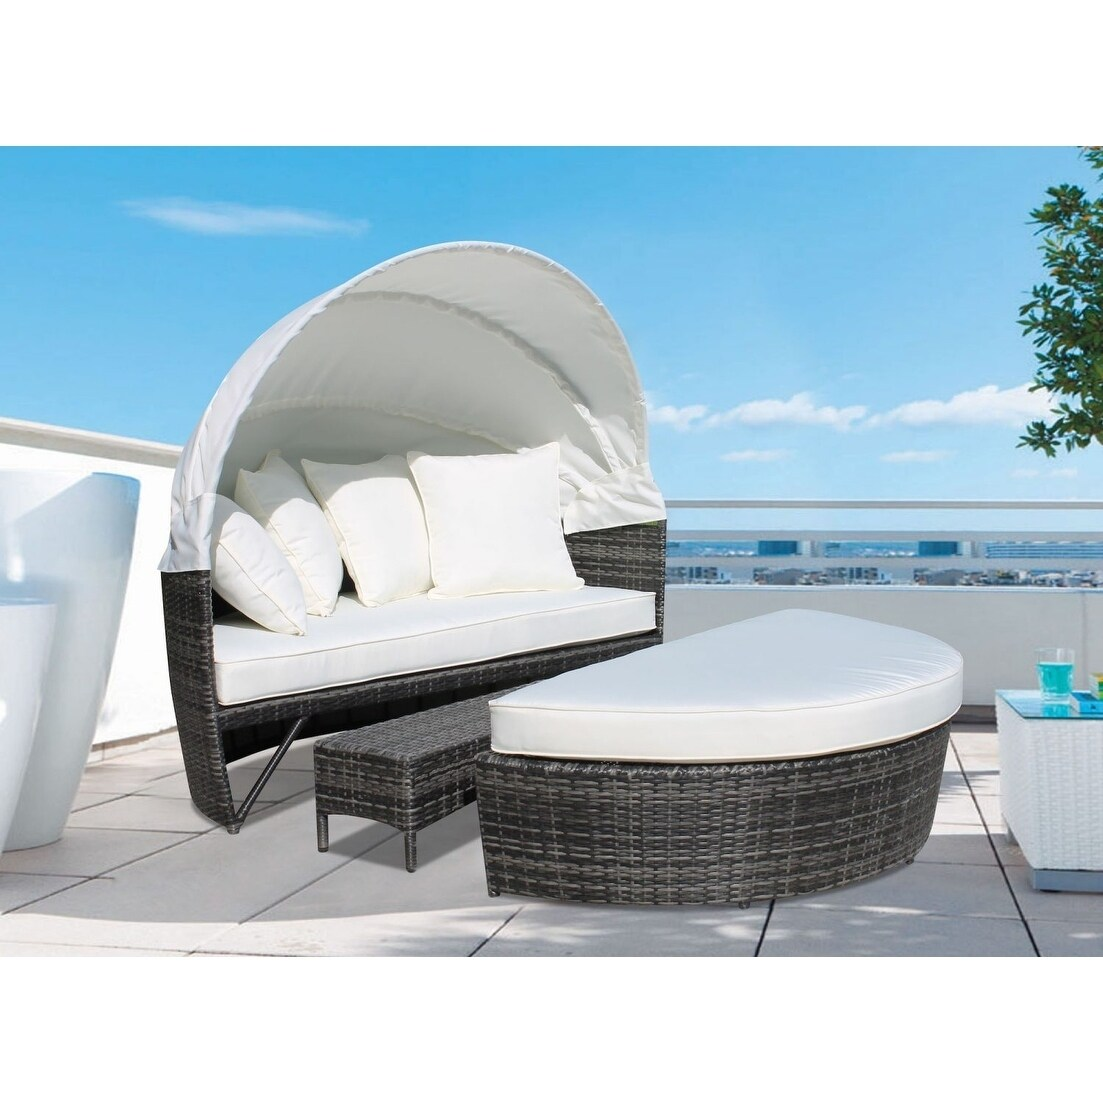 Outdoor Canopy Brown Wicker Daybed With Cushions Sogno Deluxe On Free Shipping Today 7725359